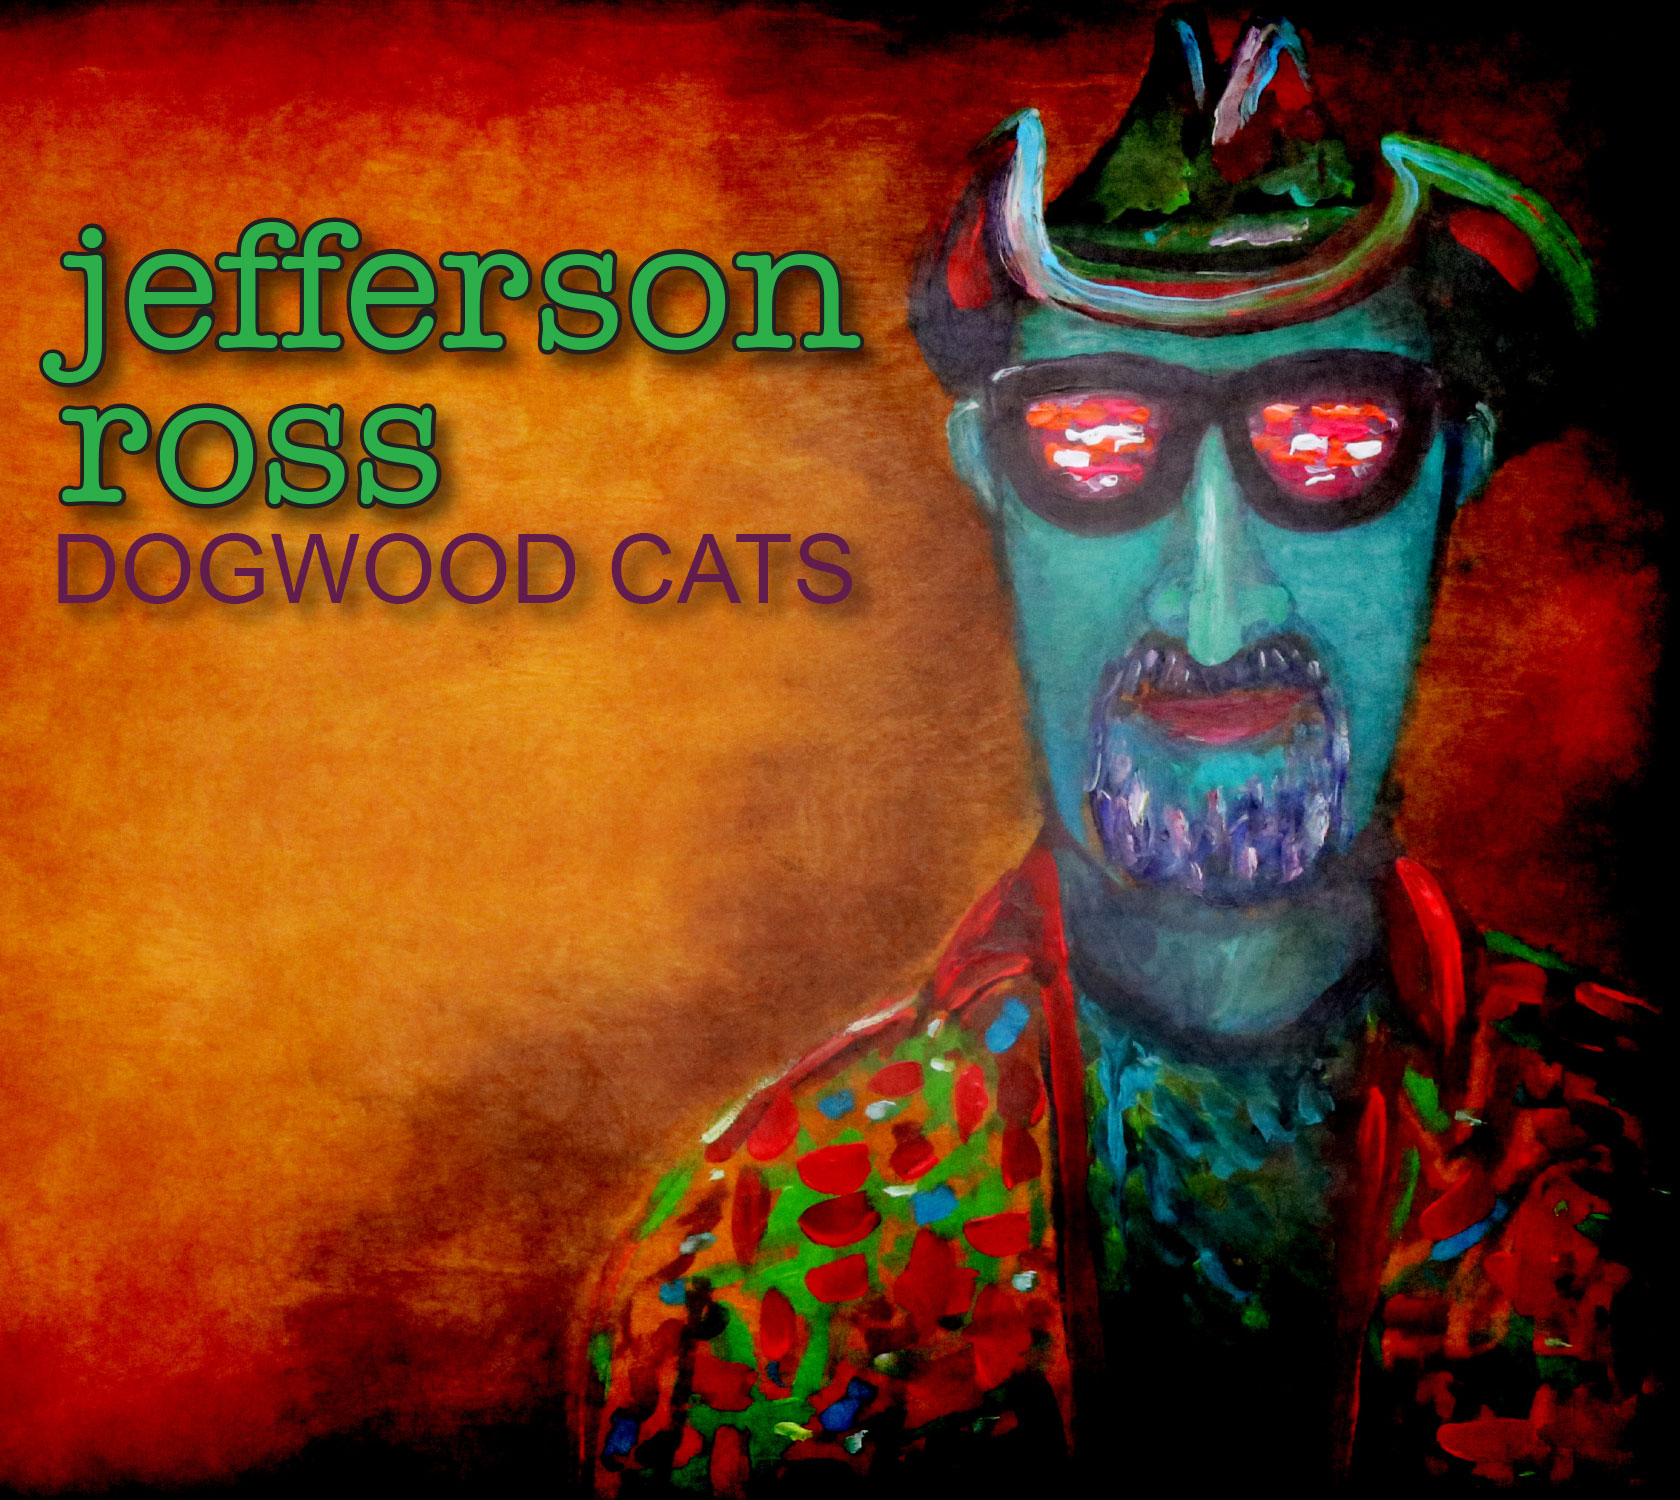 Jefferson Ross Dogwood Cats